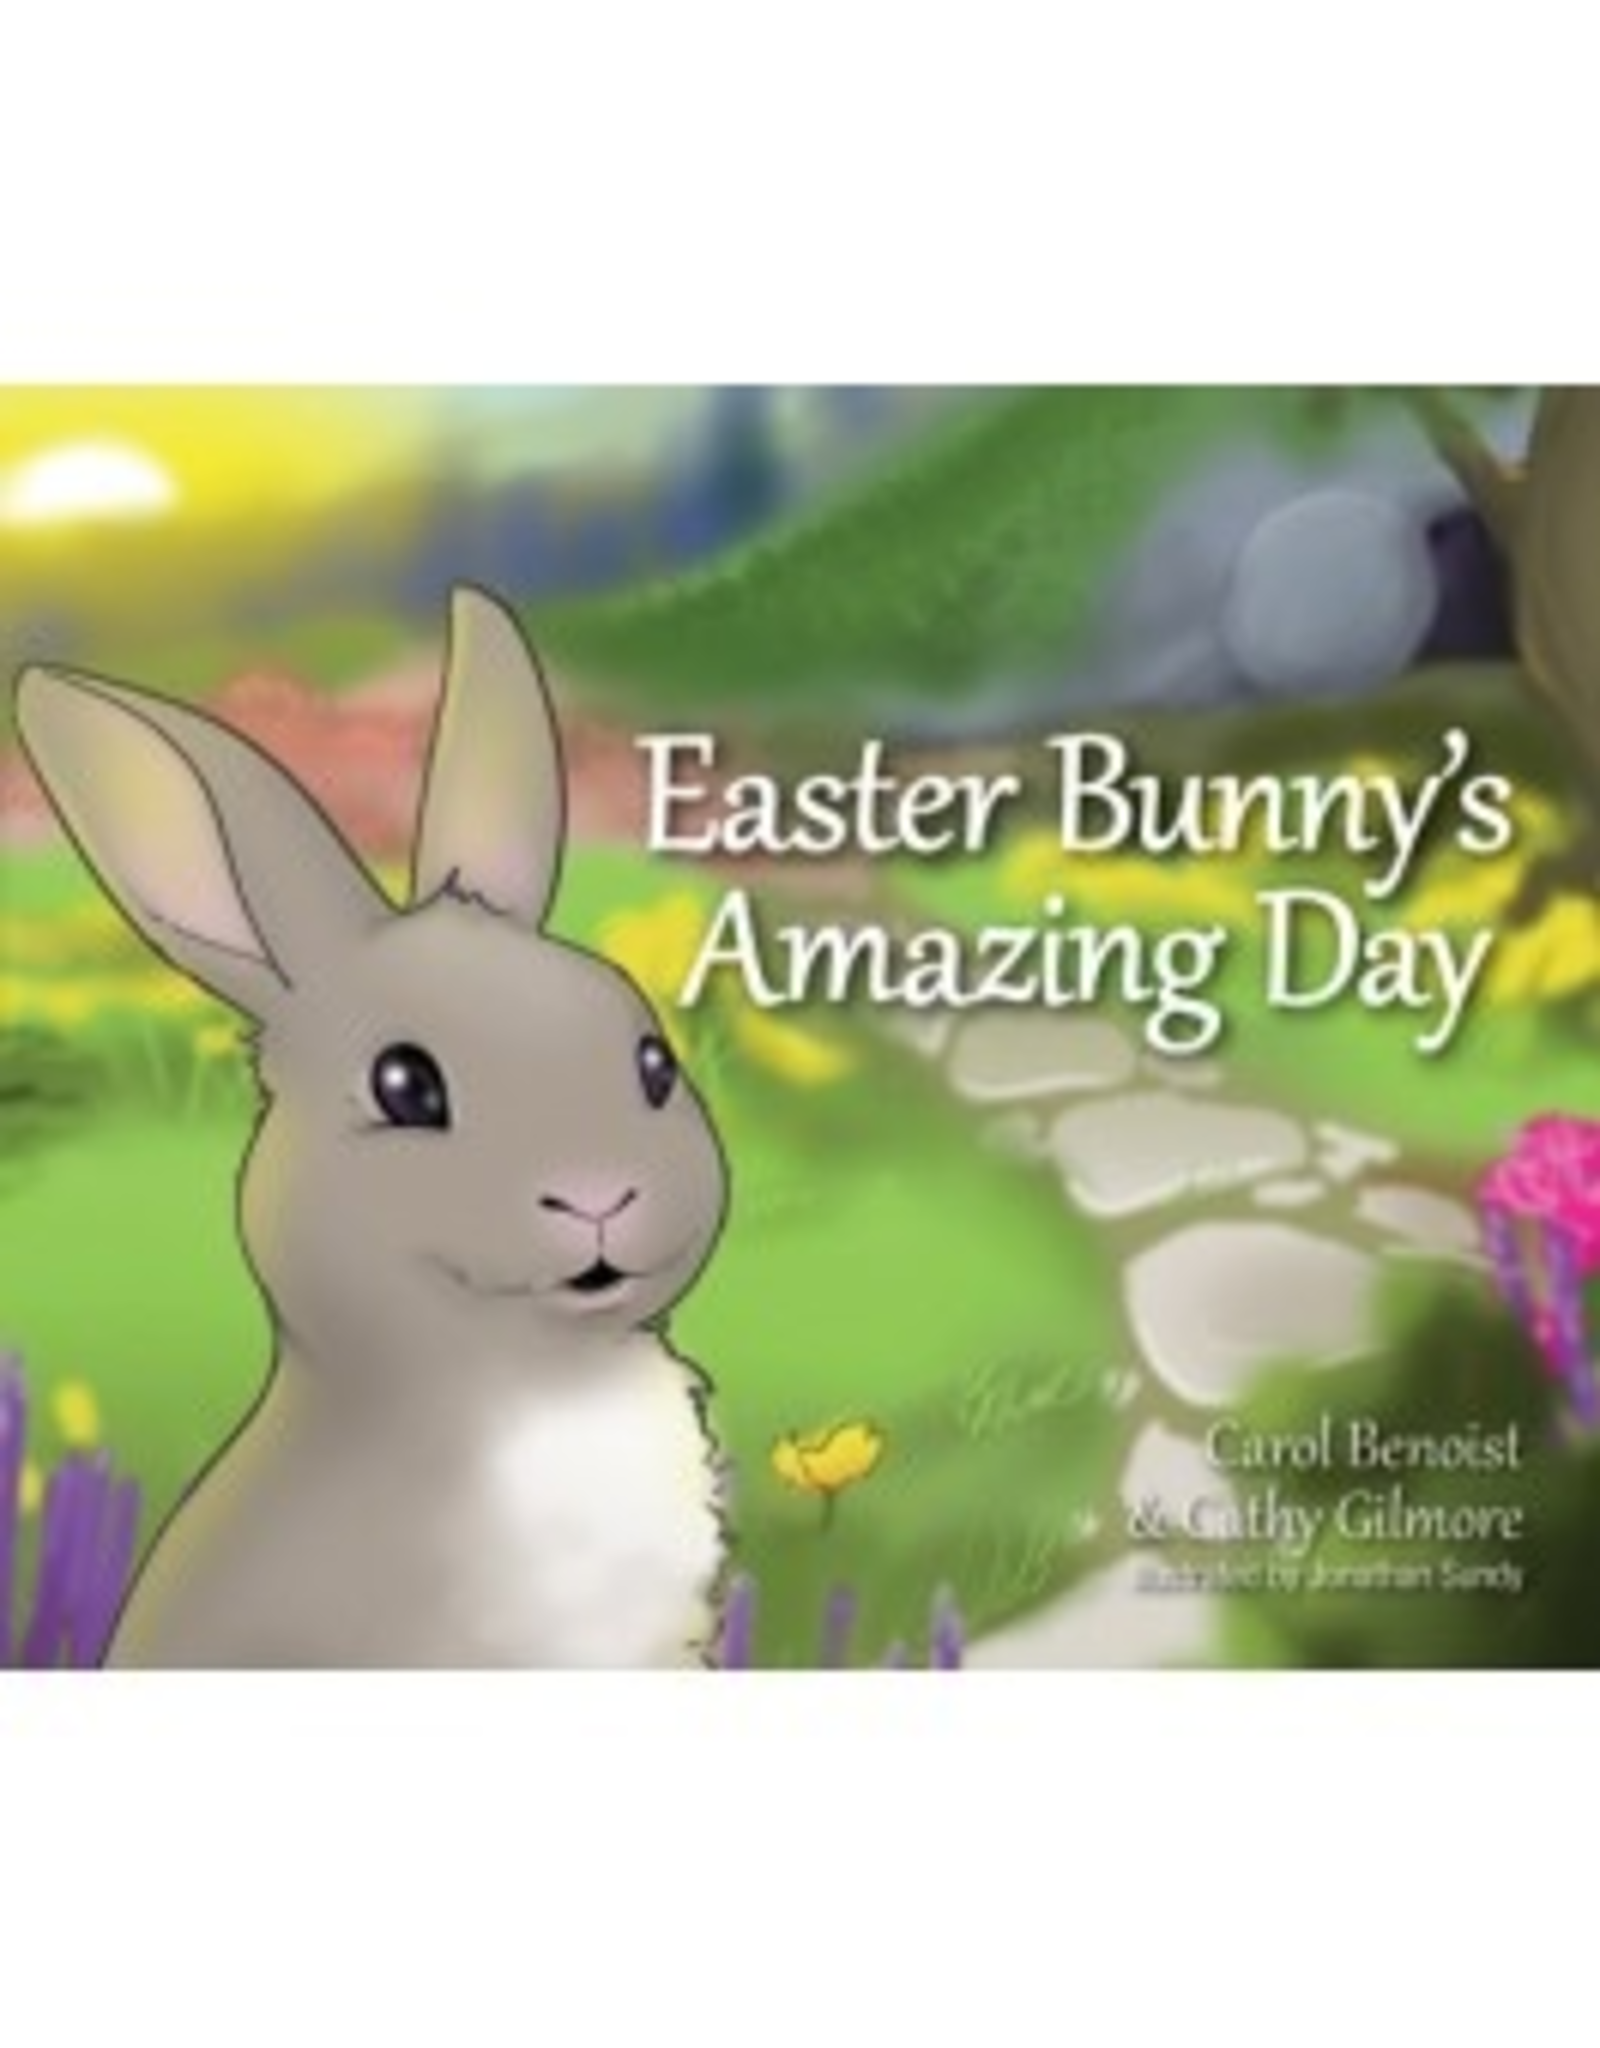 Liguori Easter Bunny's Amazing Day, by Carol Benoist and Cathy Gilmore (hardcover)